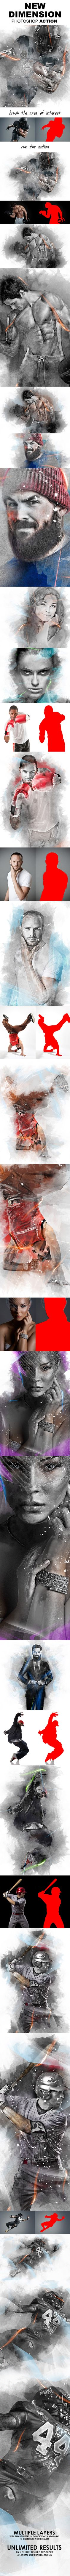 New Dimension Photoshop Action  #retouch #photographer • Download ➝ https://graphicriver.net/item/new-dimension-photoshop-action/17939100?ref=pxcr